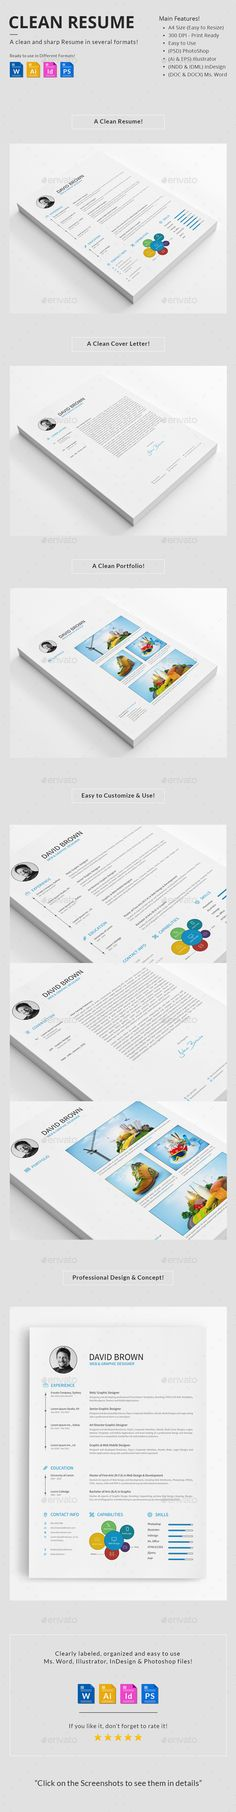 Word Resume Template - Resume Template for Word + Cover Letter - microsoft word resume template free